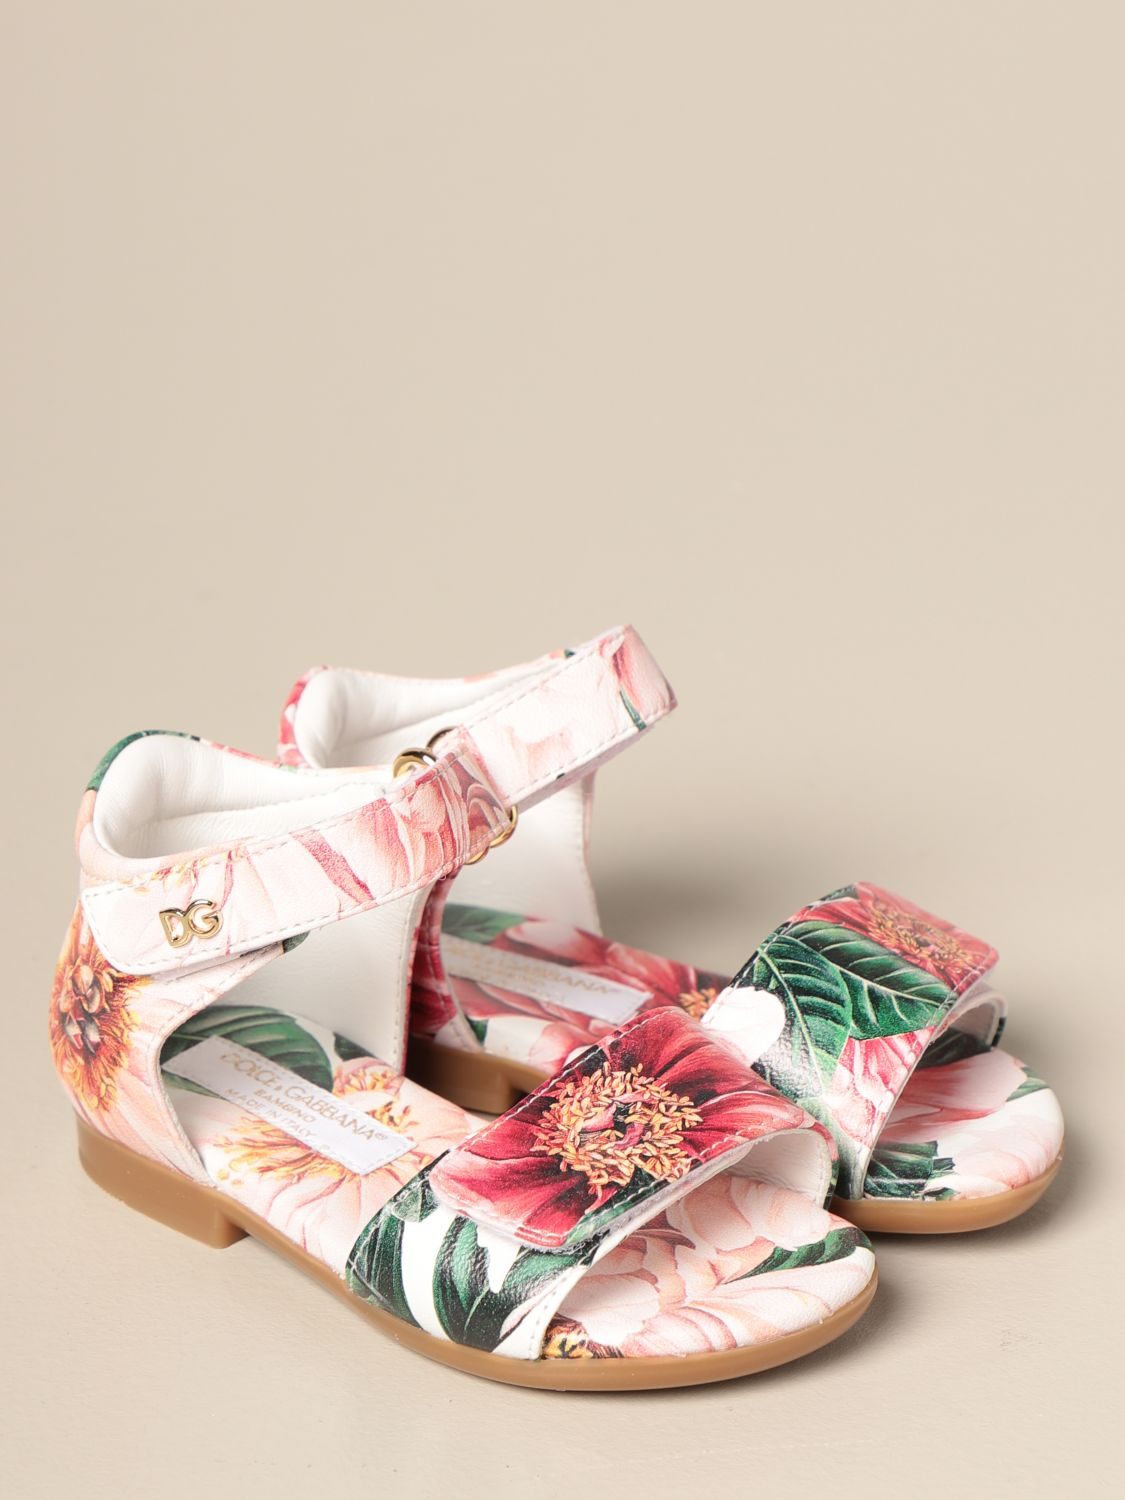 Shoes Dolce & Gabbana: Dolce & Gabbana sandal with floral pattern pink 2